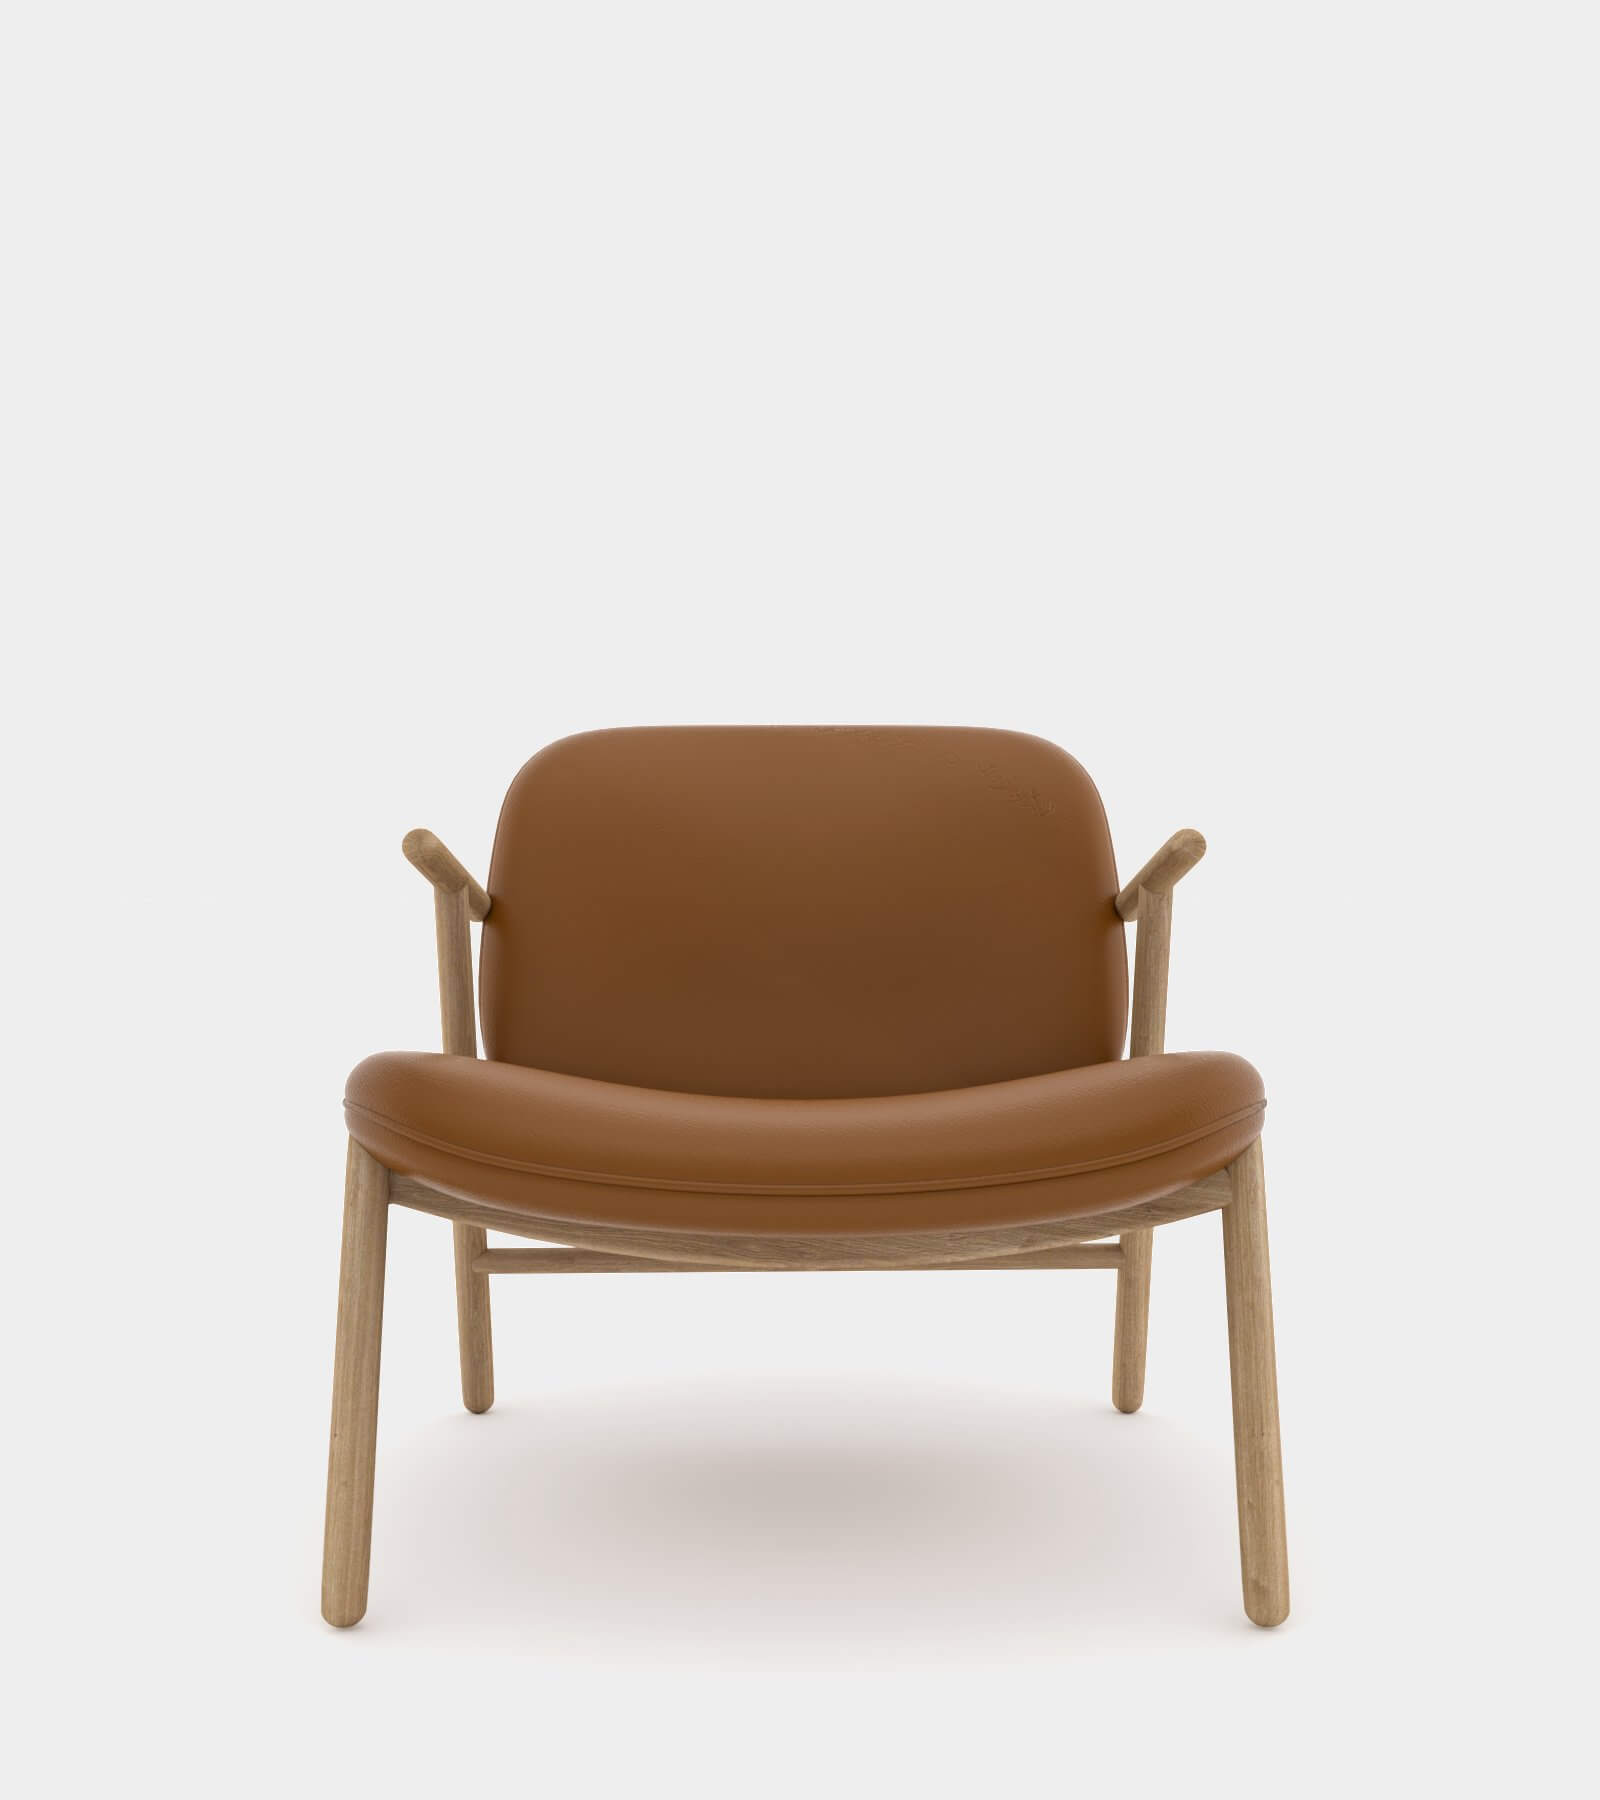 Cozy lounge chair-2 3D Model